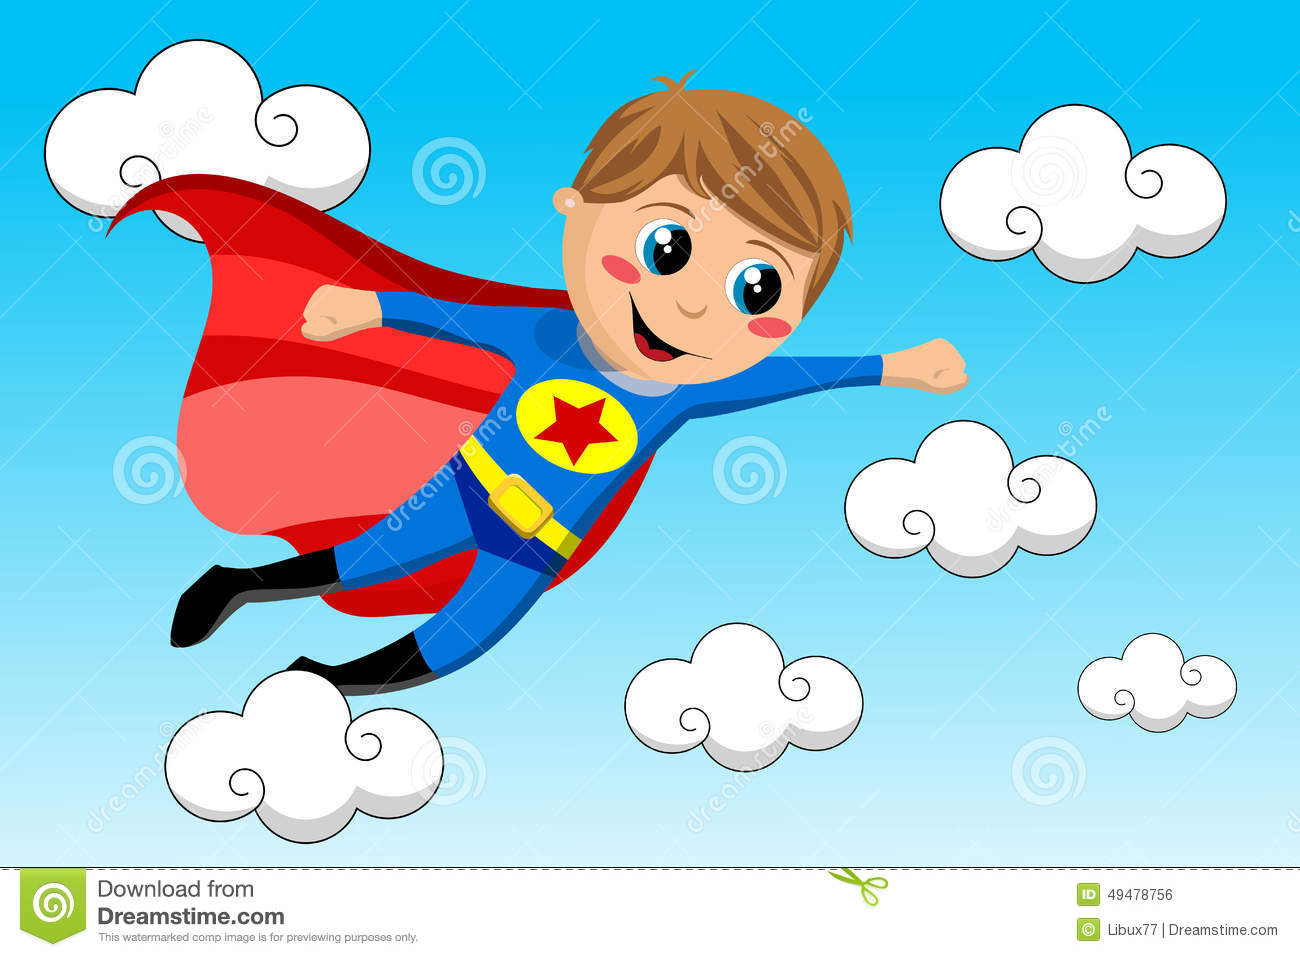 Stock Illustration Happy Superhero Kid Flying Sky Eps File Available Image49478756 as well Report The Stethoscope Is On Its Way Out 1956090 as well Short term memory loss in addition Stock Illustration Elderly People Medical Hospital Disabled Equipments Vector Icons Design Image57778714 also V1189436 Funny Nurses Stuff. on old technology health care cartoon